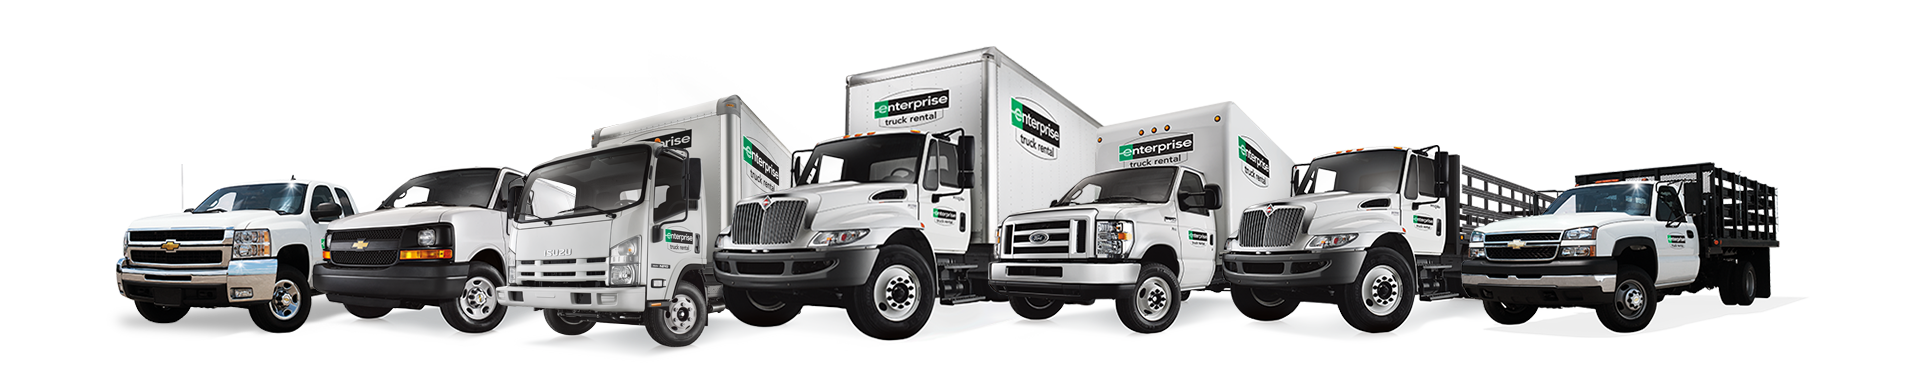 Enterprise Truck Rental Has 330 Locations And Plans To Add 40 More In The  Coming Year.